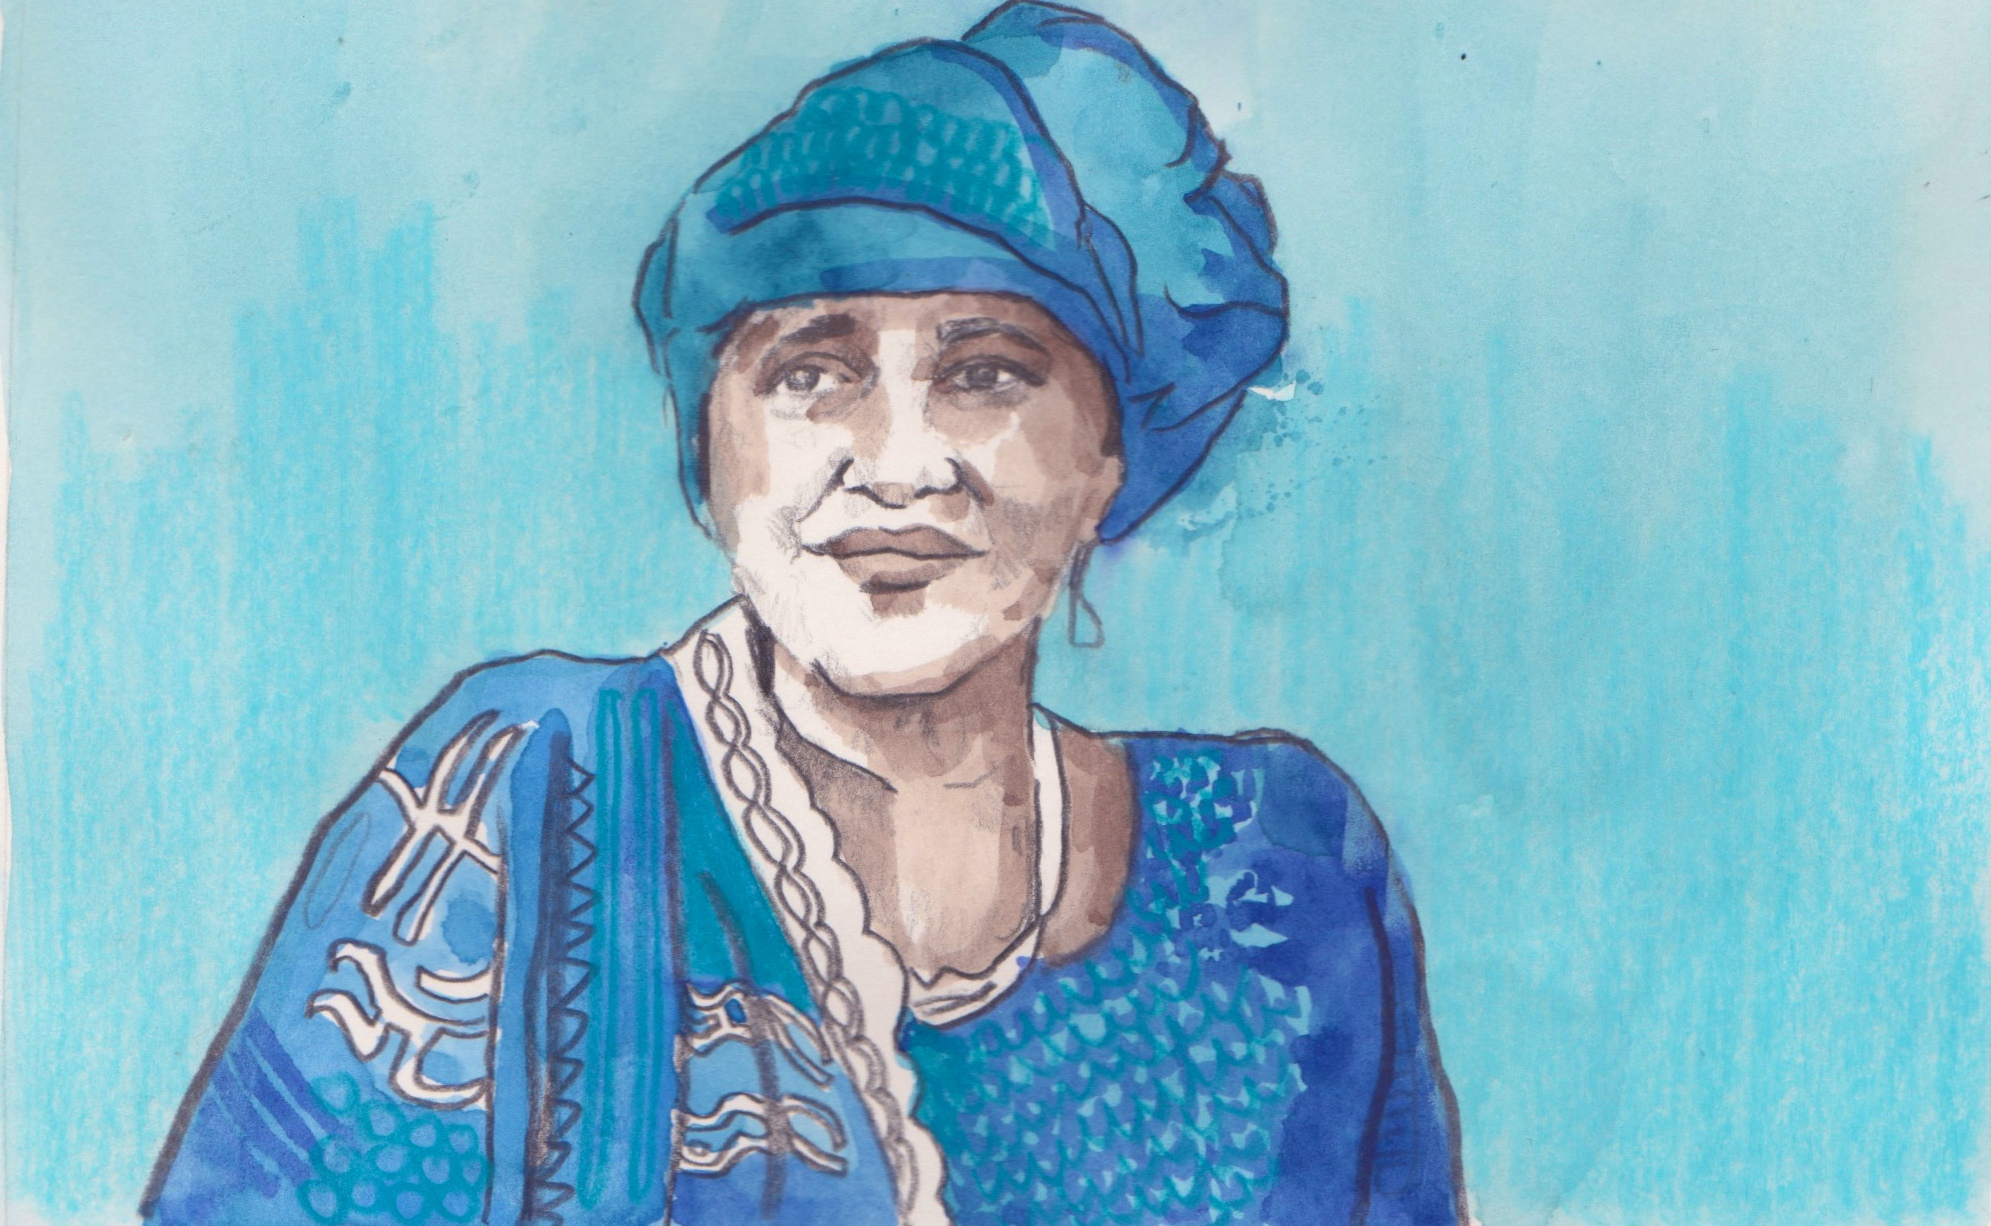 """15/03/15Dr Hawa Abdi Diblaawe, or """"Mama Hawa"""" as she is known in Somalia, is a remarkable woman who has run a hospital and refugee camp throughout the country's 22-year civil war, sheltering hundreds of thousands and saving many lives"""